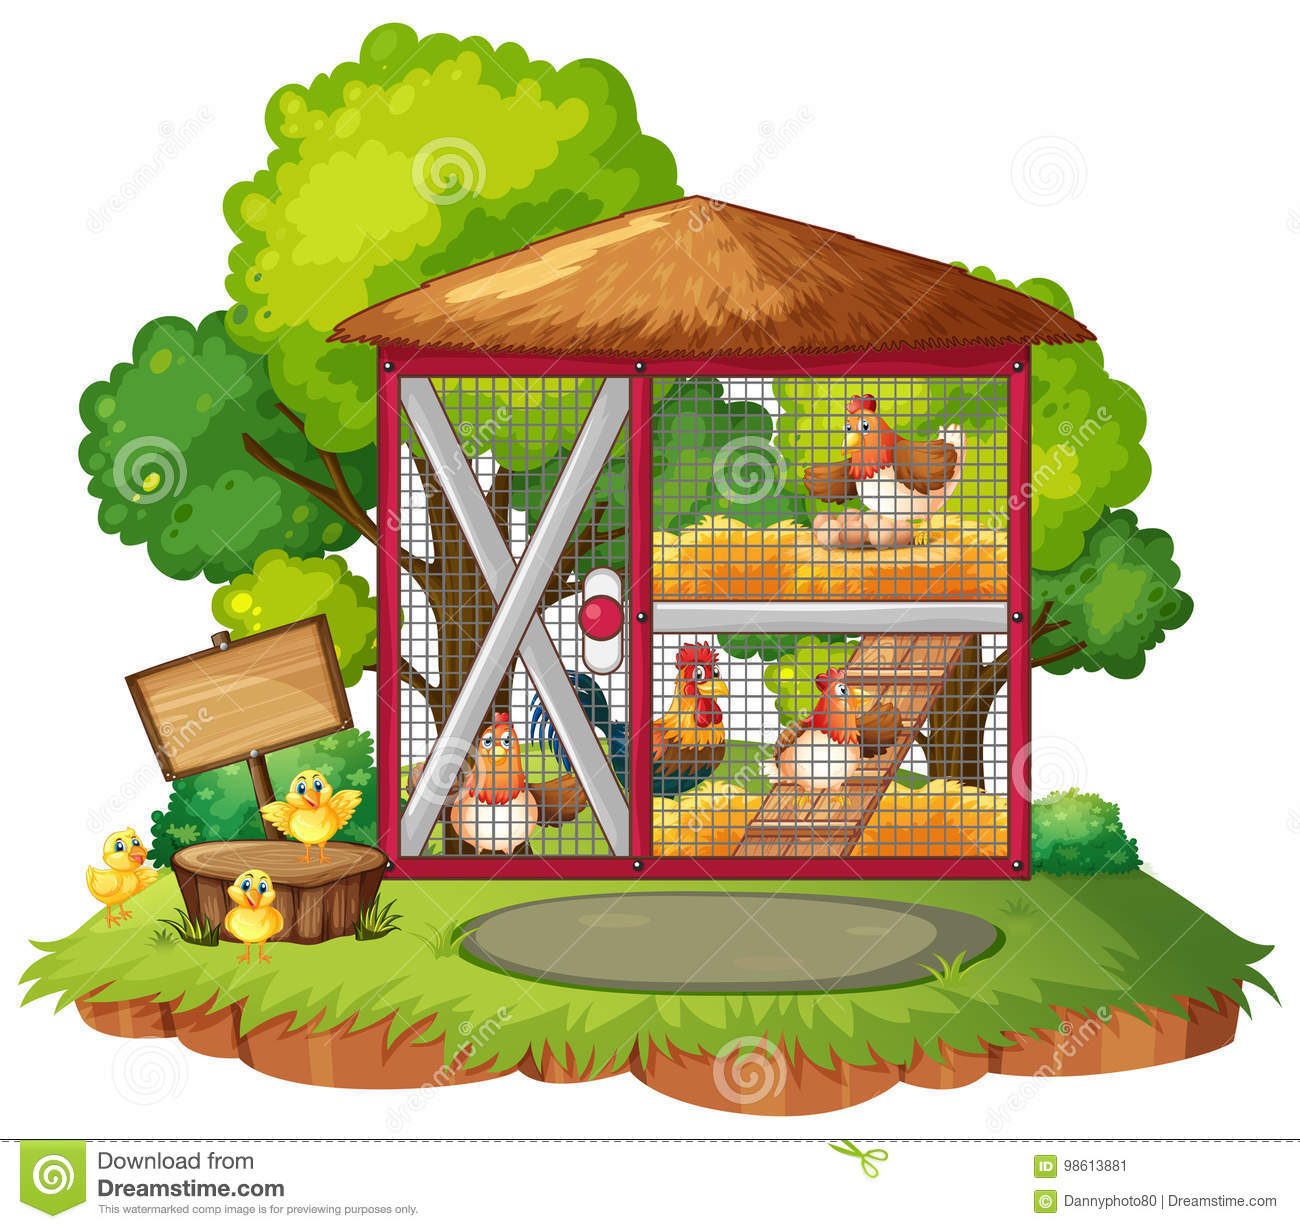 Many Chickens In The Coop Stock Vector Illustration Of Clipart